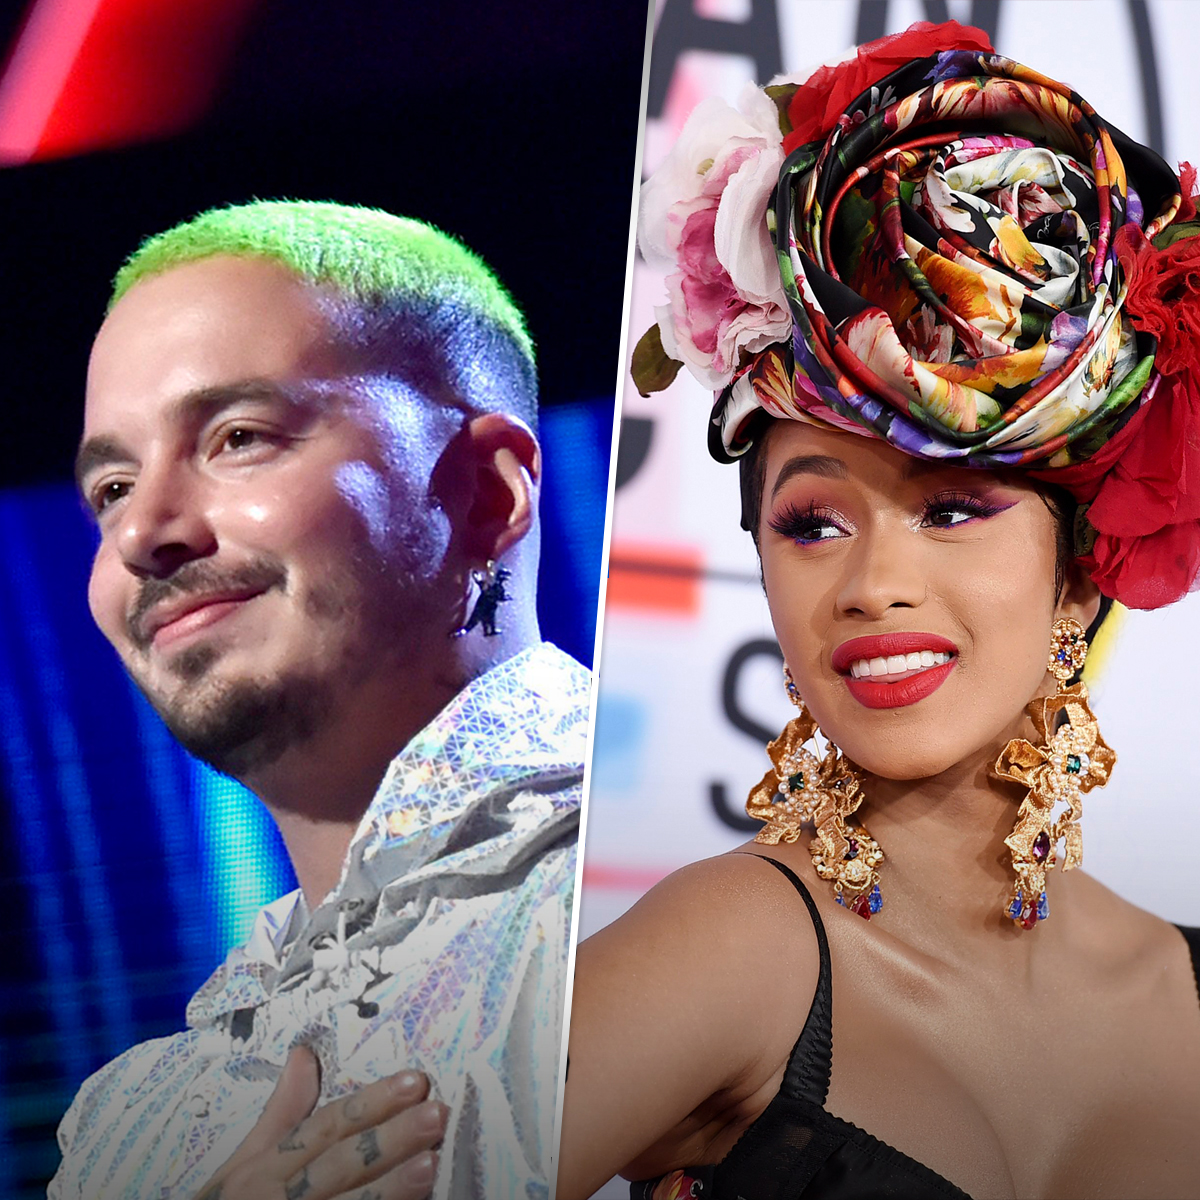 2018 was a blowout year for Latin music